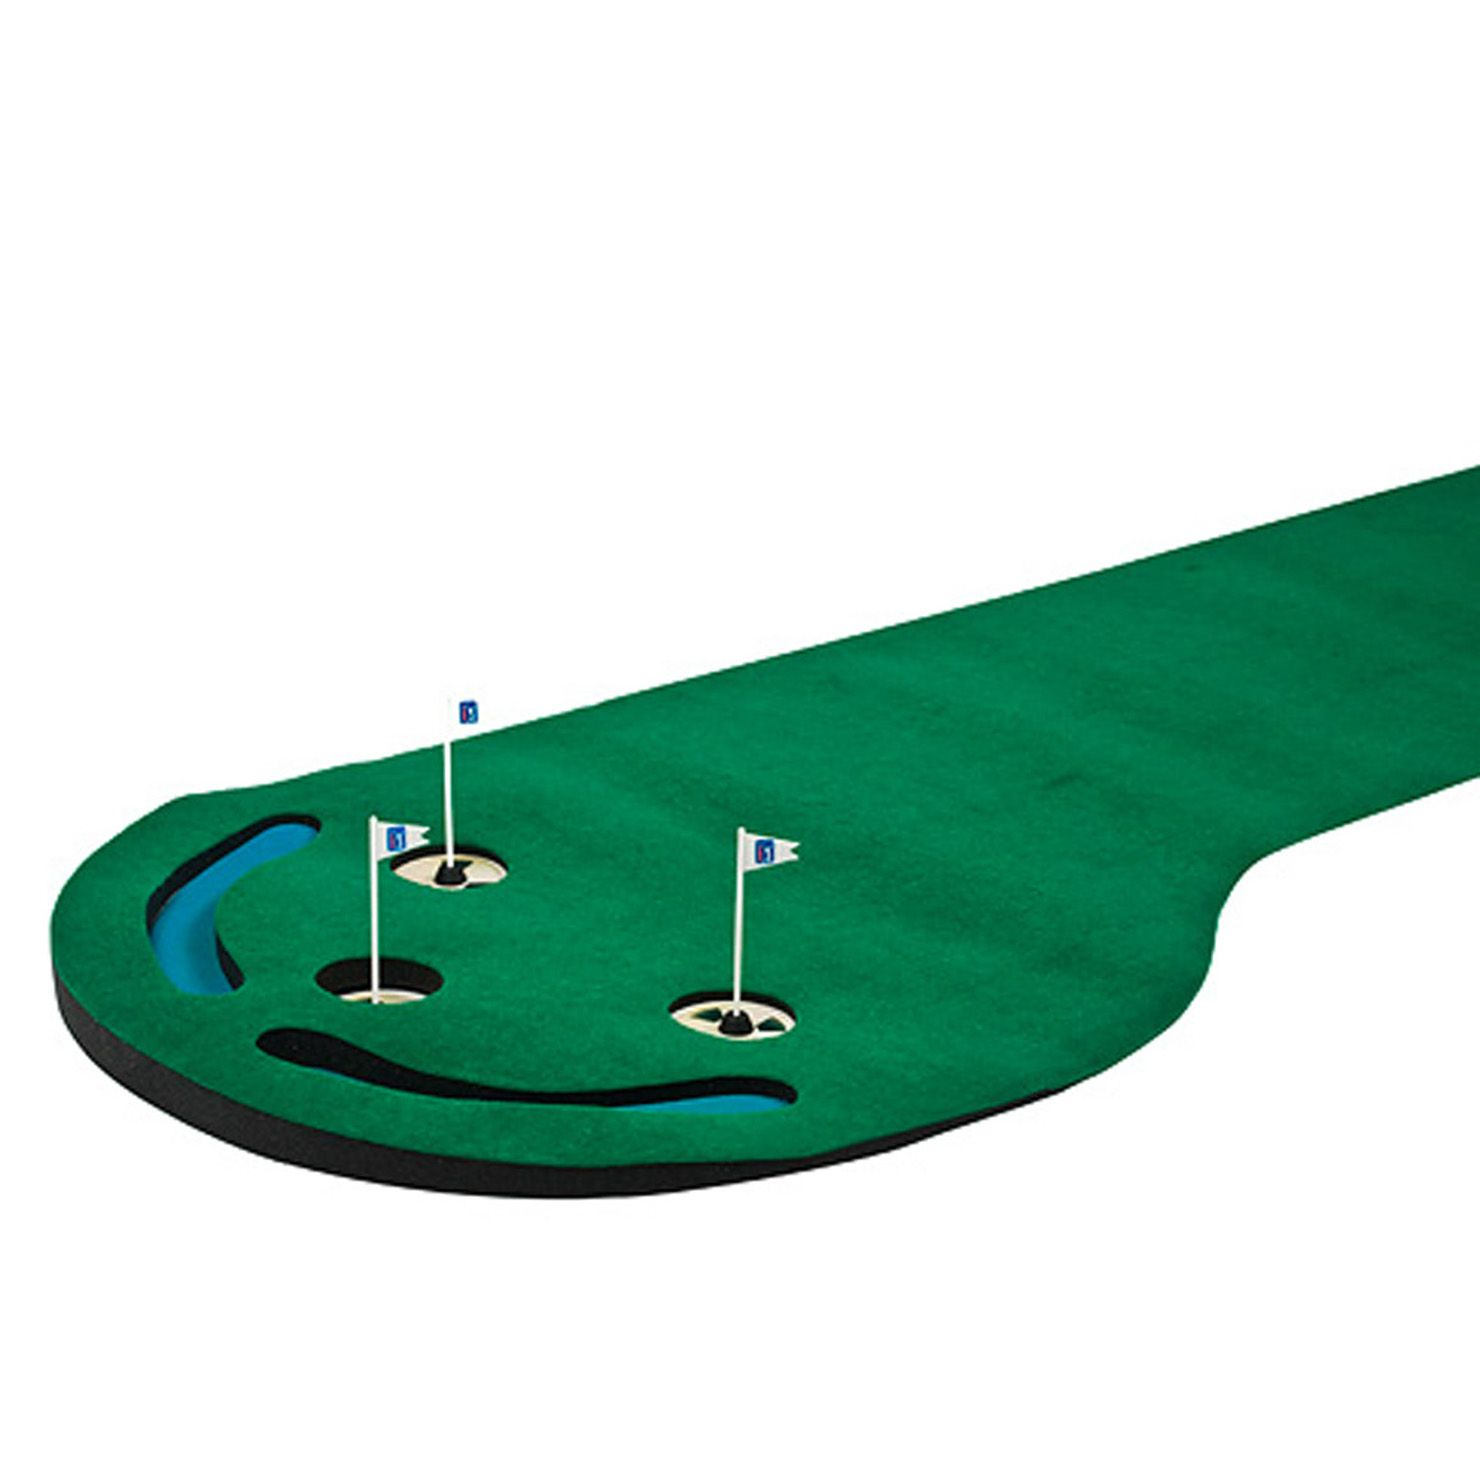 PGA Golf 3ft x 9ft Putting Matt - RRP £67.99 / ACHICA Price £37.00